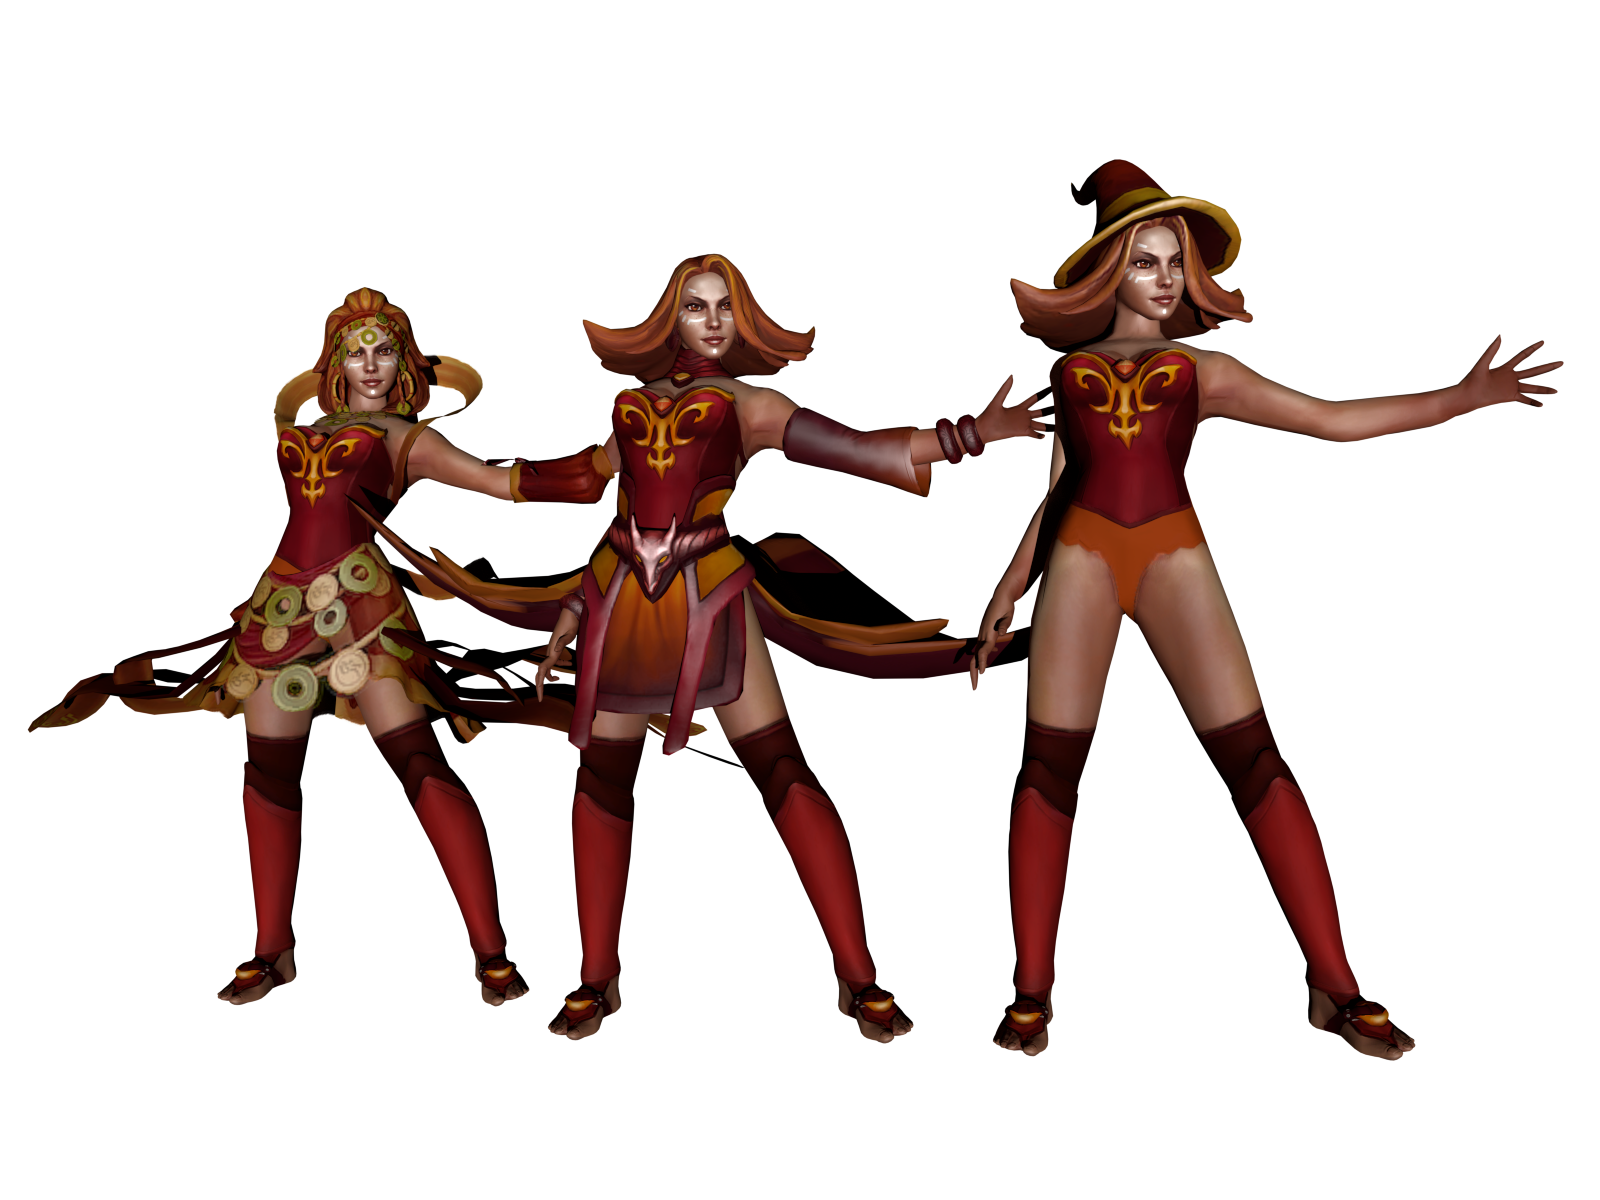 dota 2 lina the slayer xps only by lezisell on deviantart